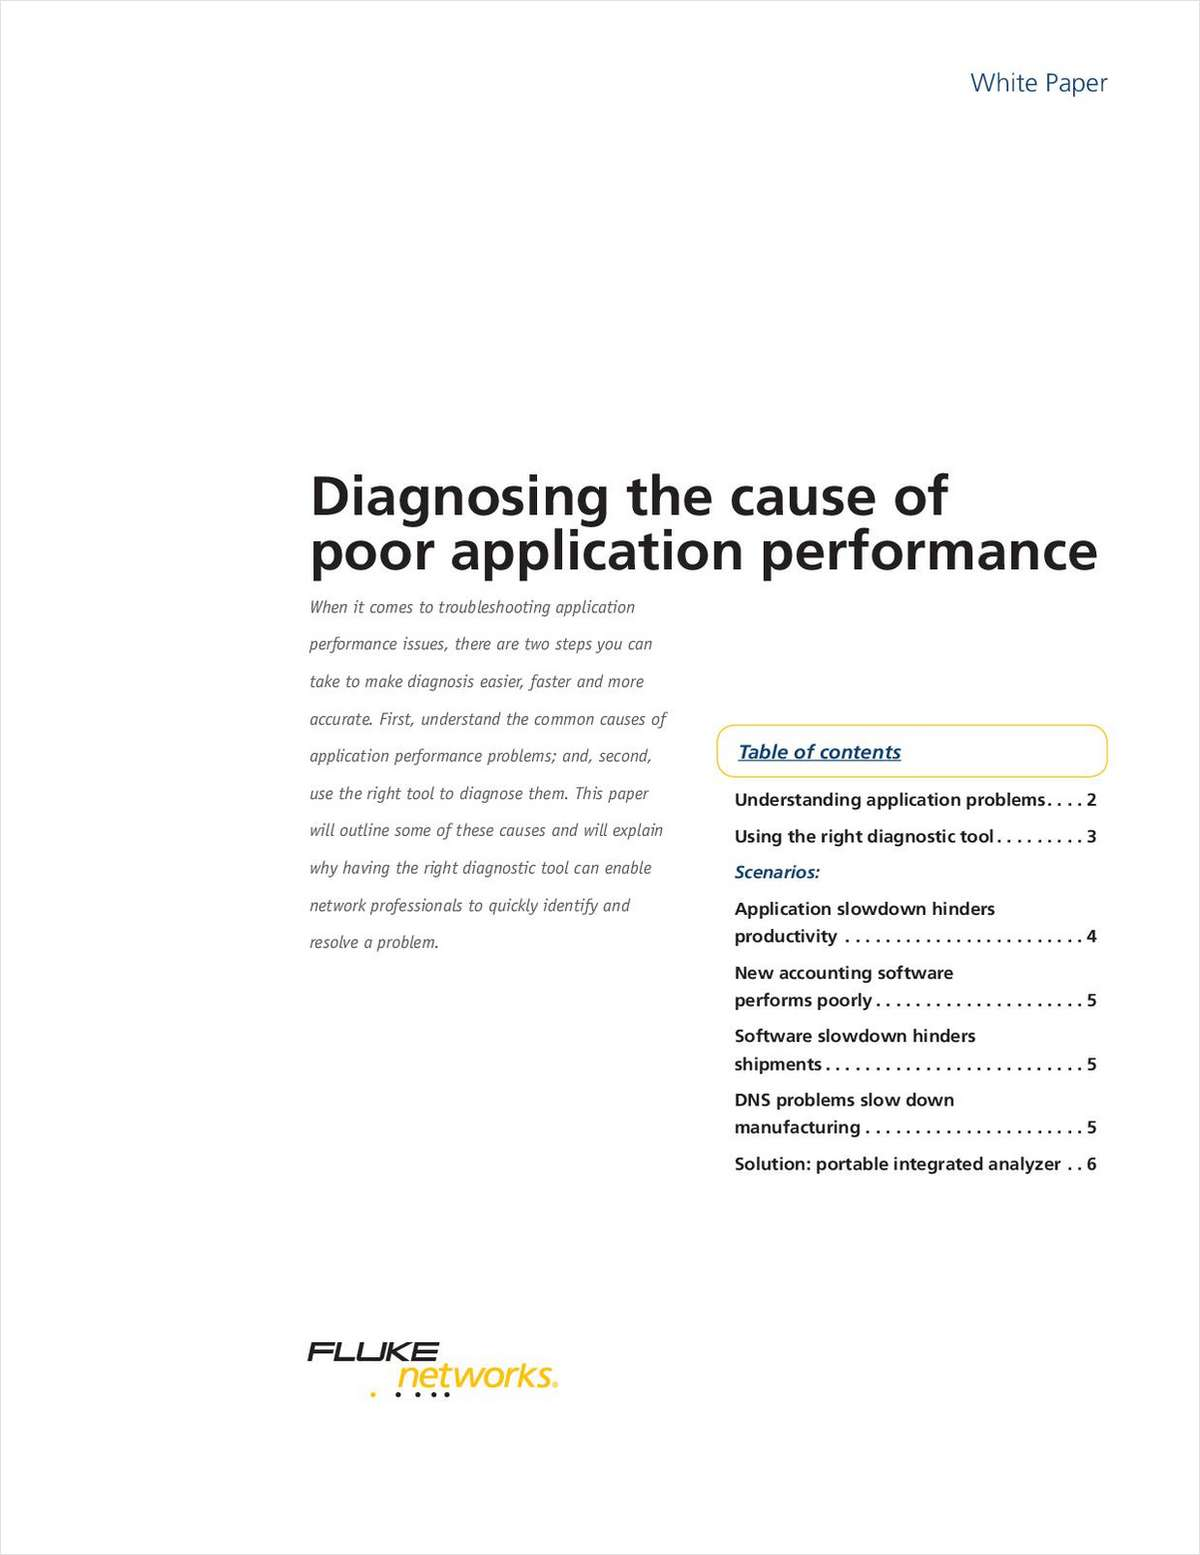 Diagnosing the cause of poor application performance